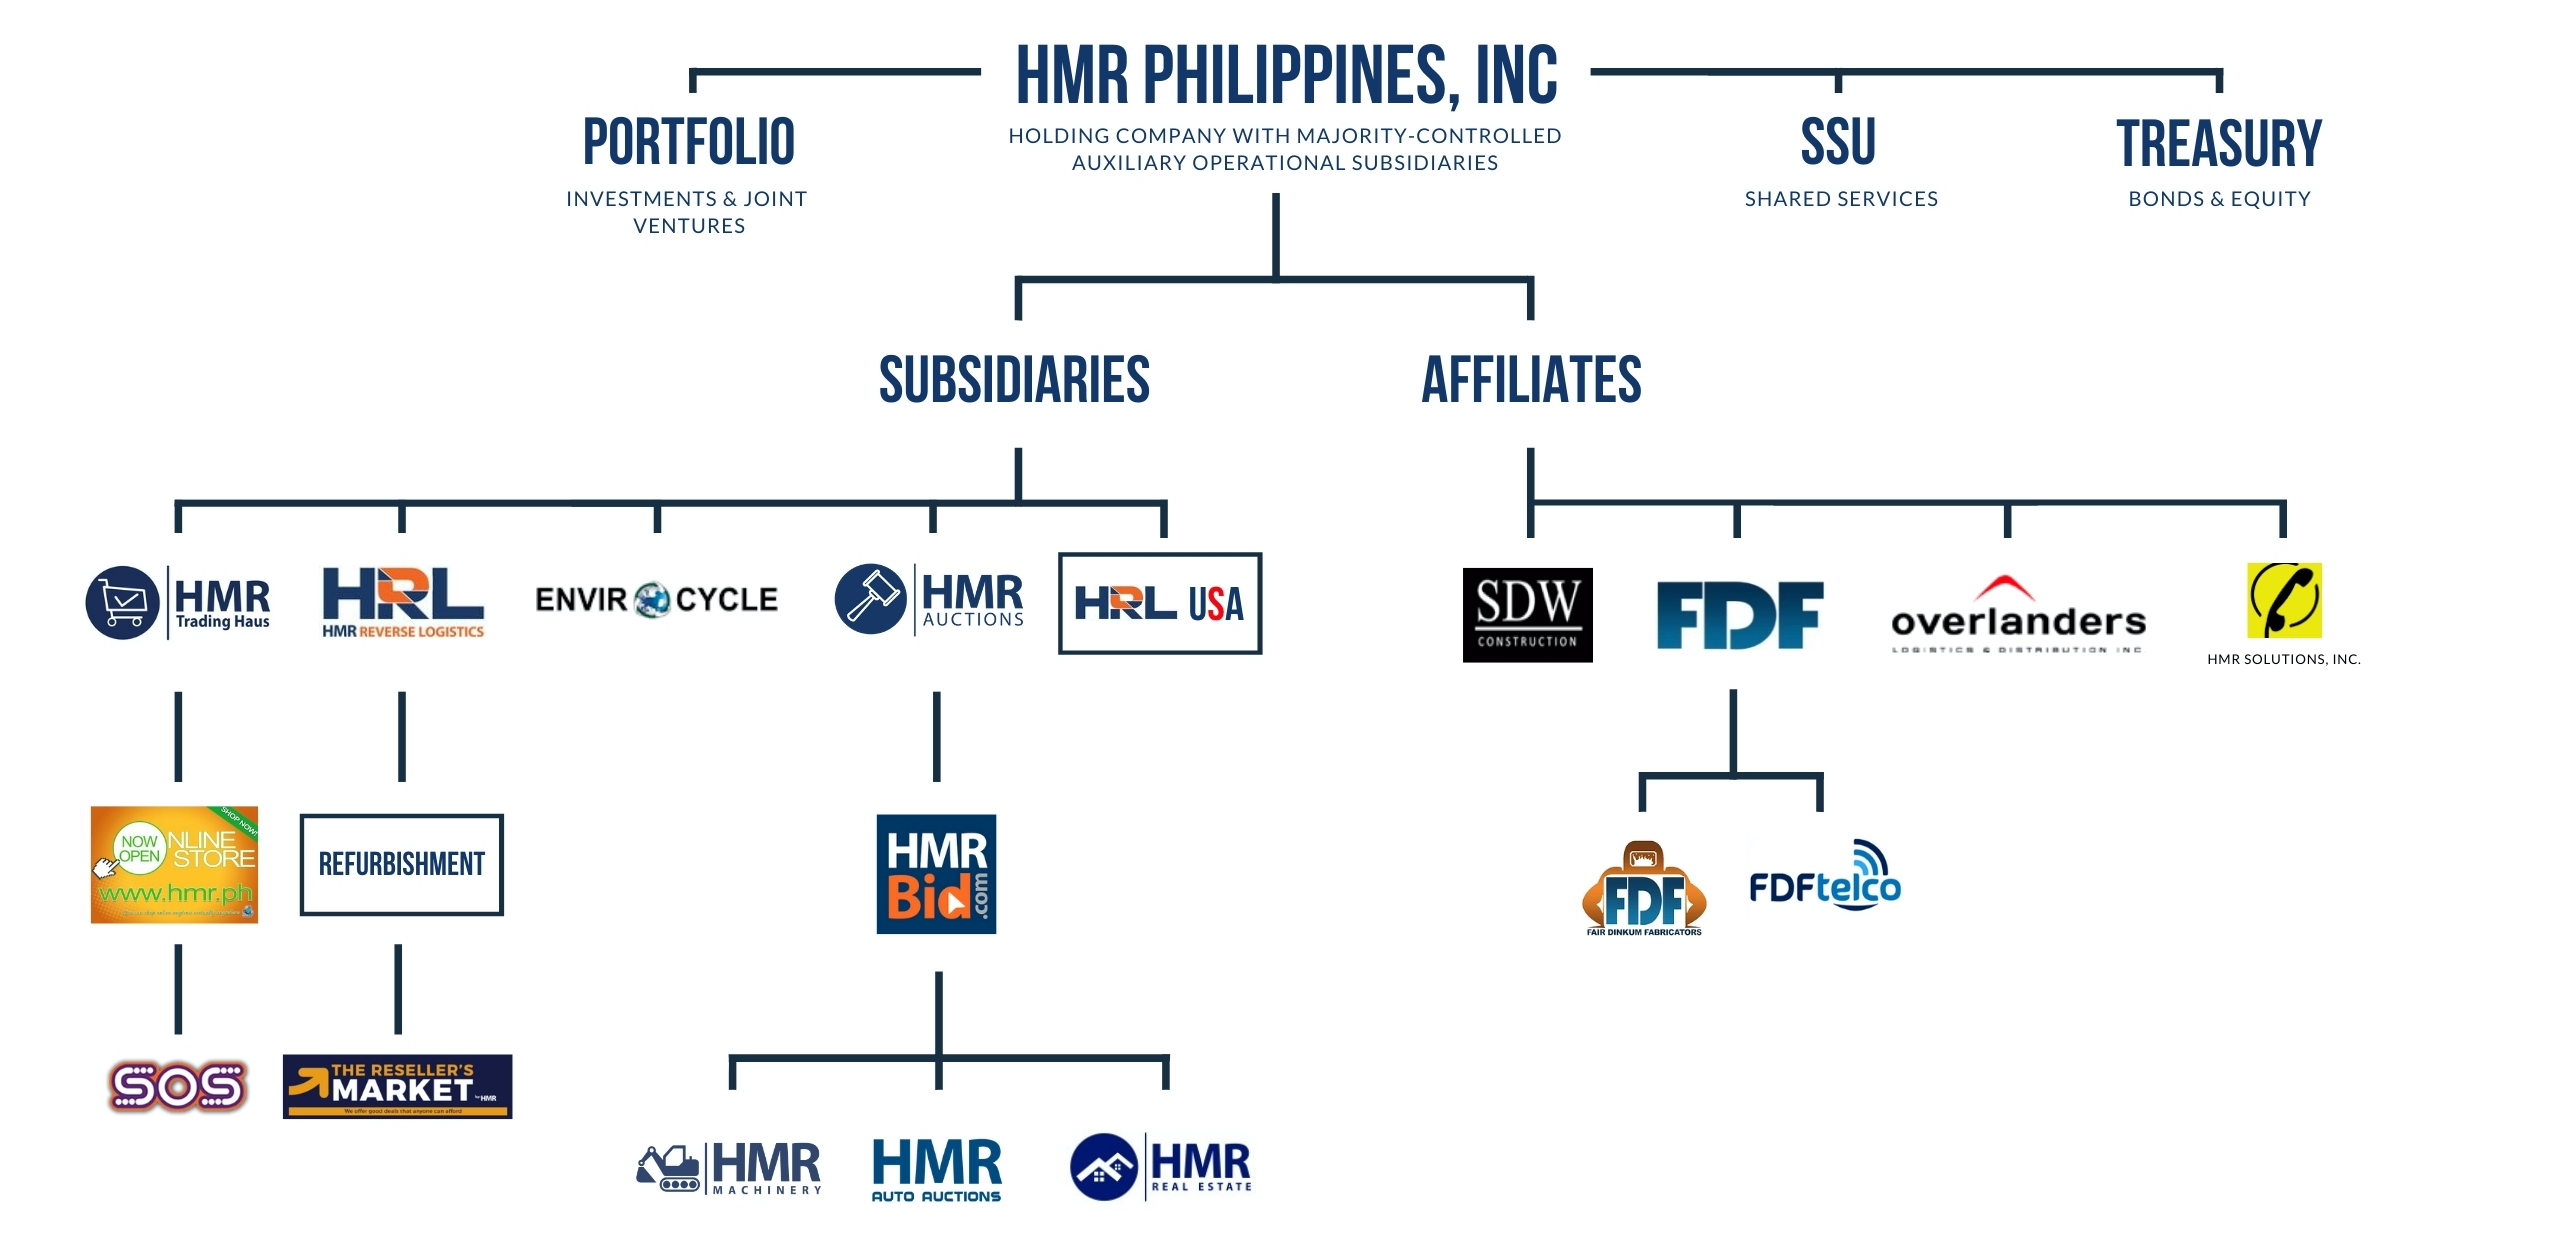 HMR Philippines Org Chart